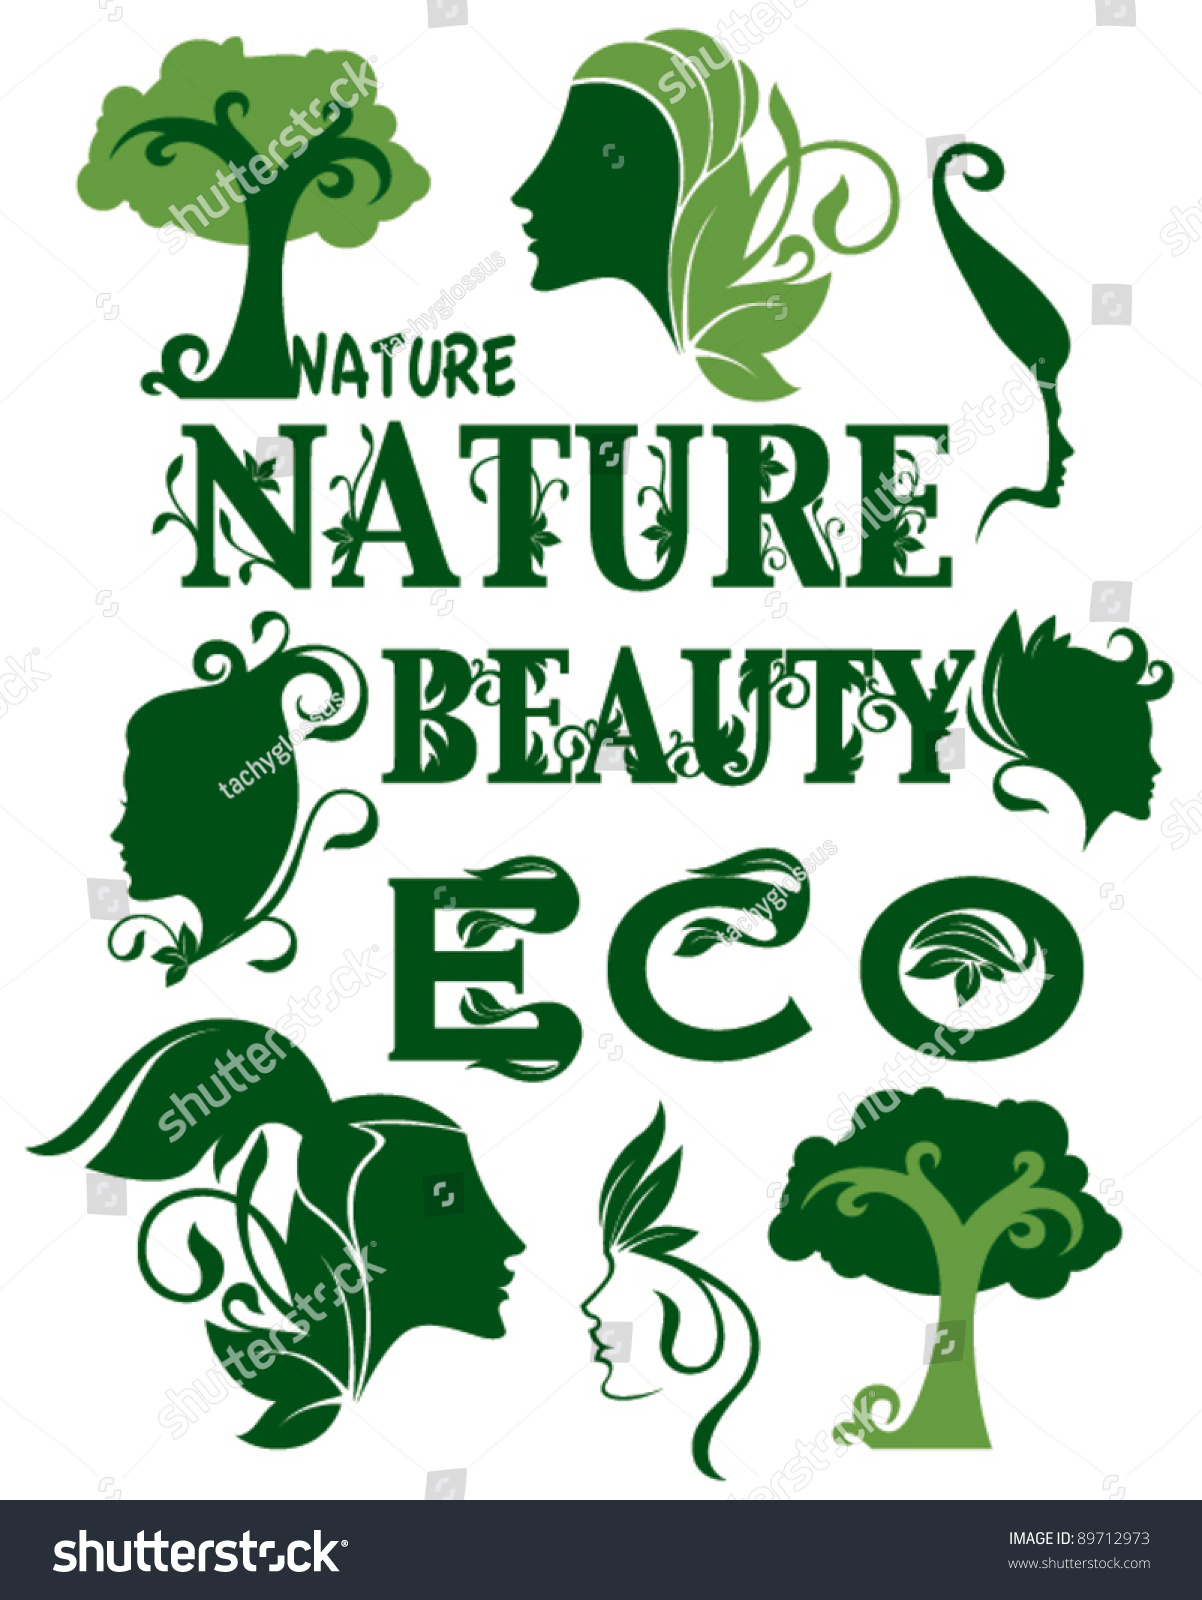 Collection Ecological Symbols Symbols Beauty Care Stock Vector